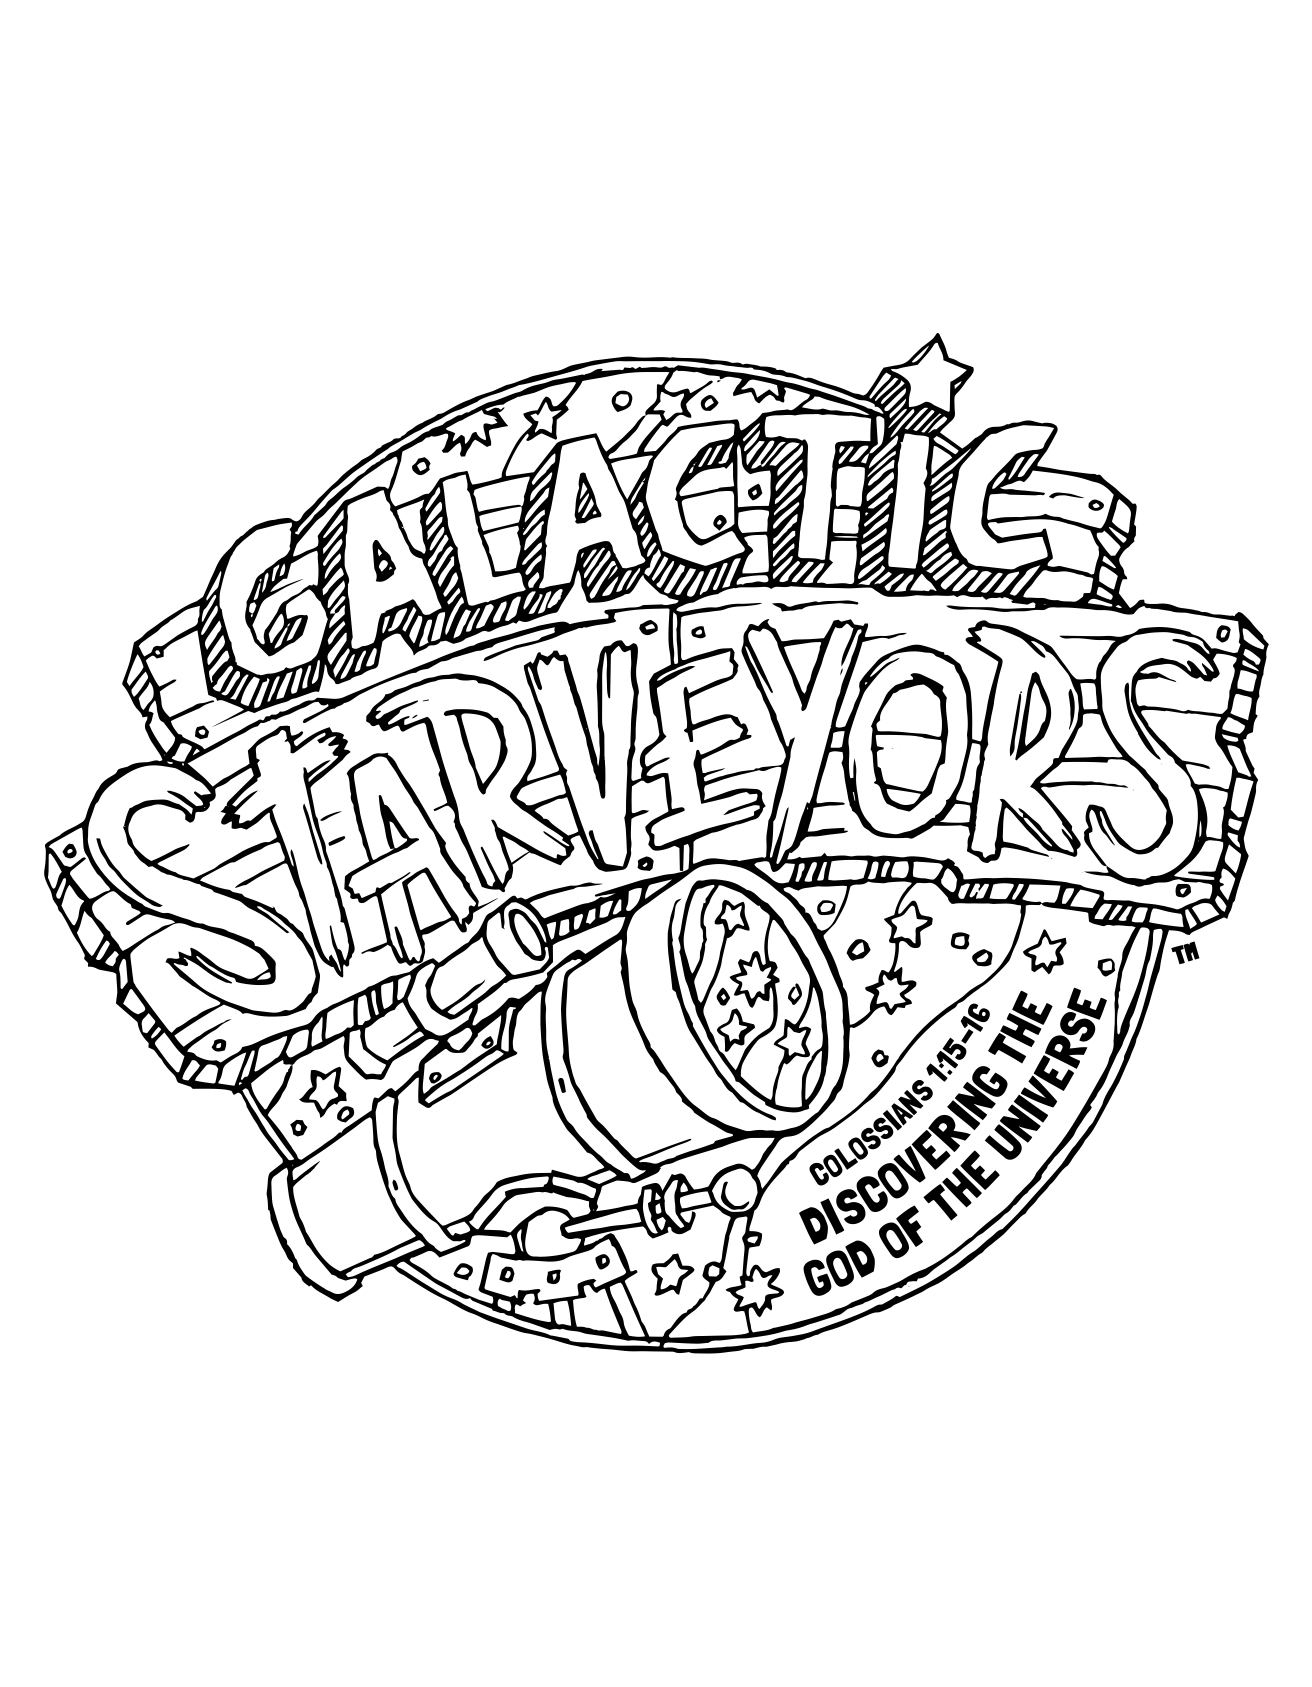 galactic starveyors coloring pages Galactic Starveyors Clip Art Related Keywords & Suggestions  galactic starveyors coloring pages